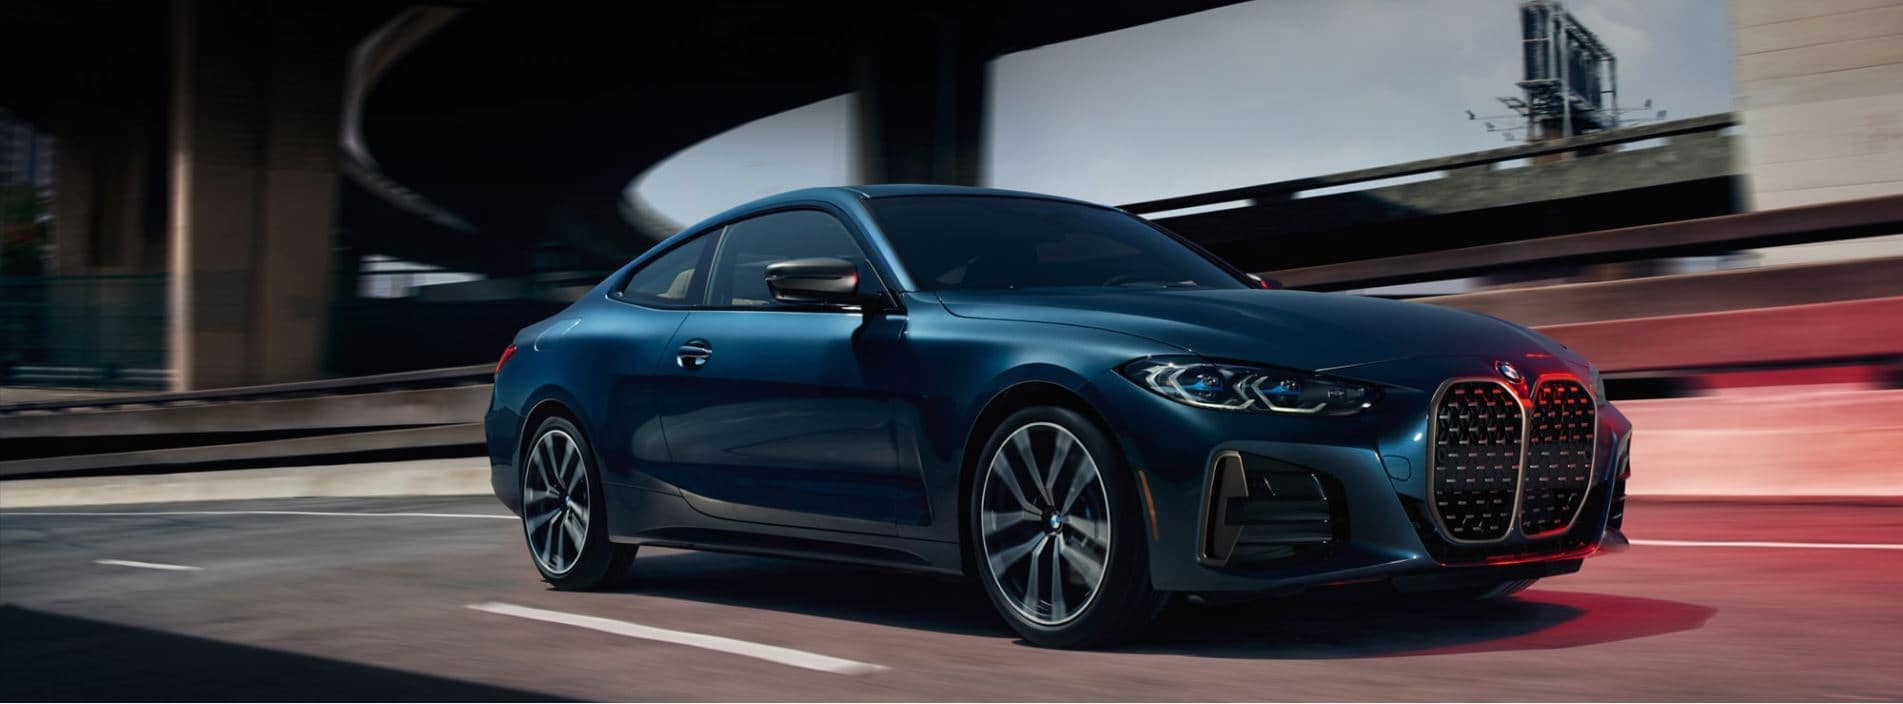 redesigned BMW 4 Series Coupe